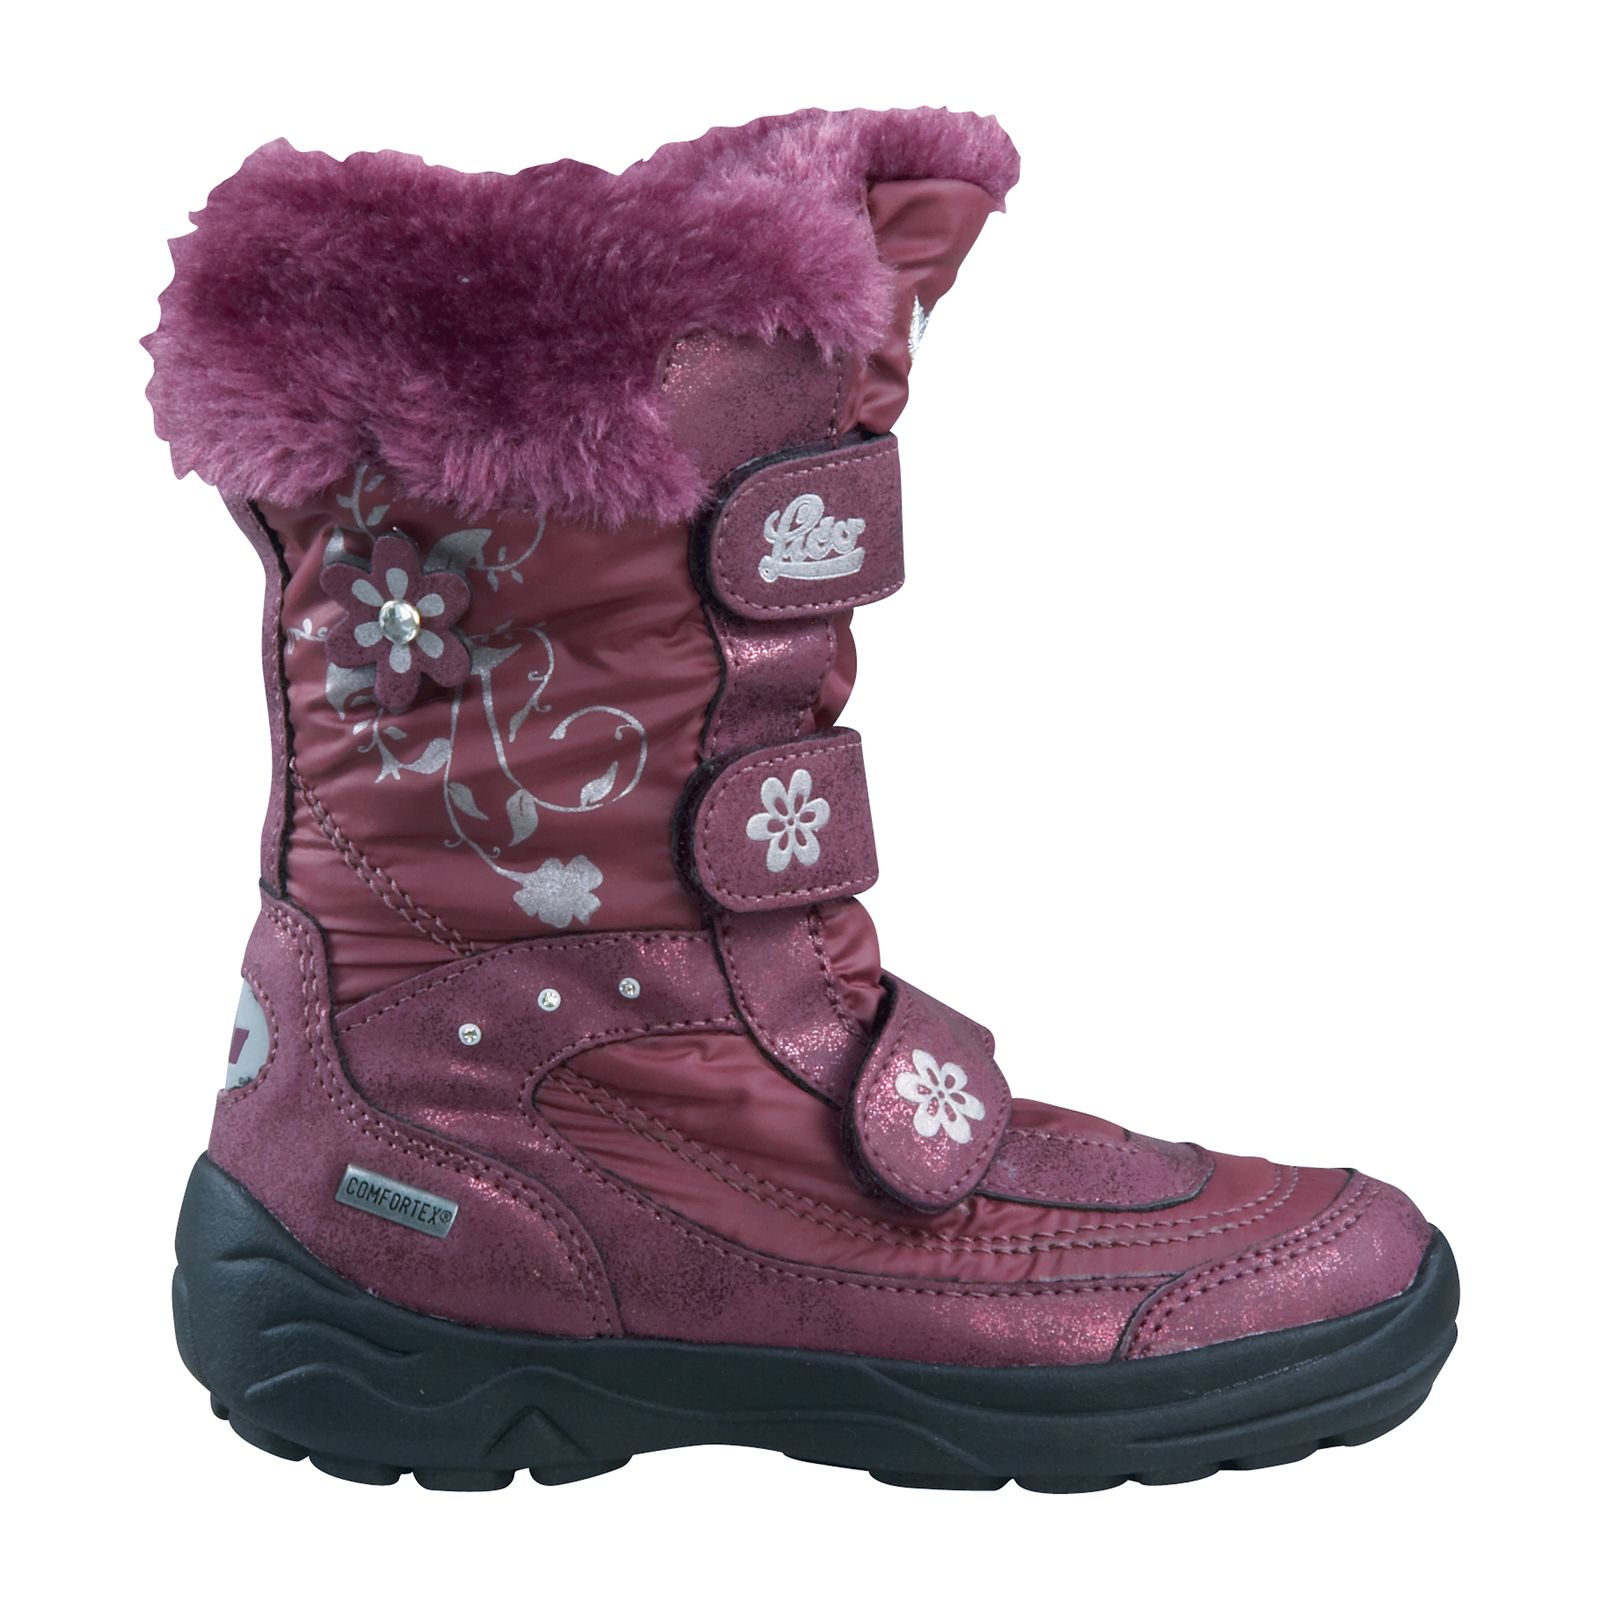 best sneakers 52939 e7f62 Lico Kinder Winterstiefel MARY V 720262 bordeaux / silver